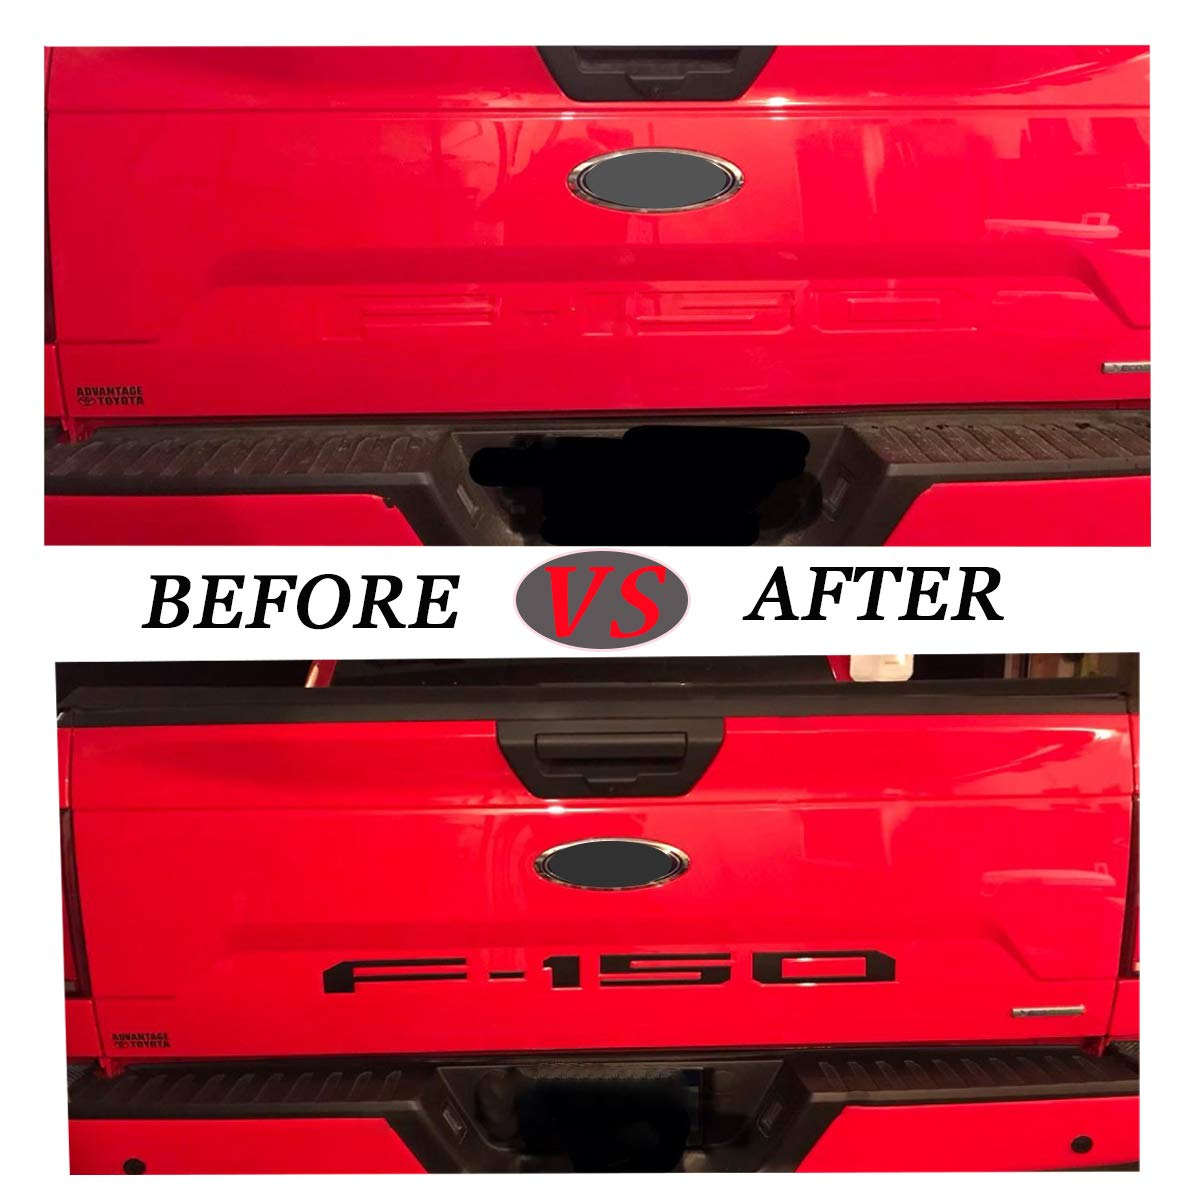 ARITA Tailgate Insert Letters for Ford F150 2018-2019 Gloss Red with Black Border 3M Adhesive /& 3D Raised Metal Tailgate Decal Letters